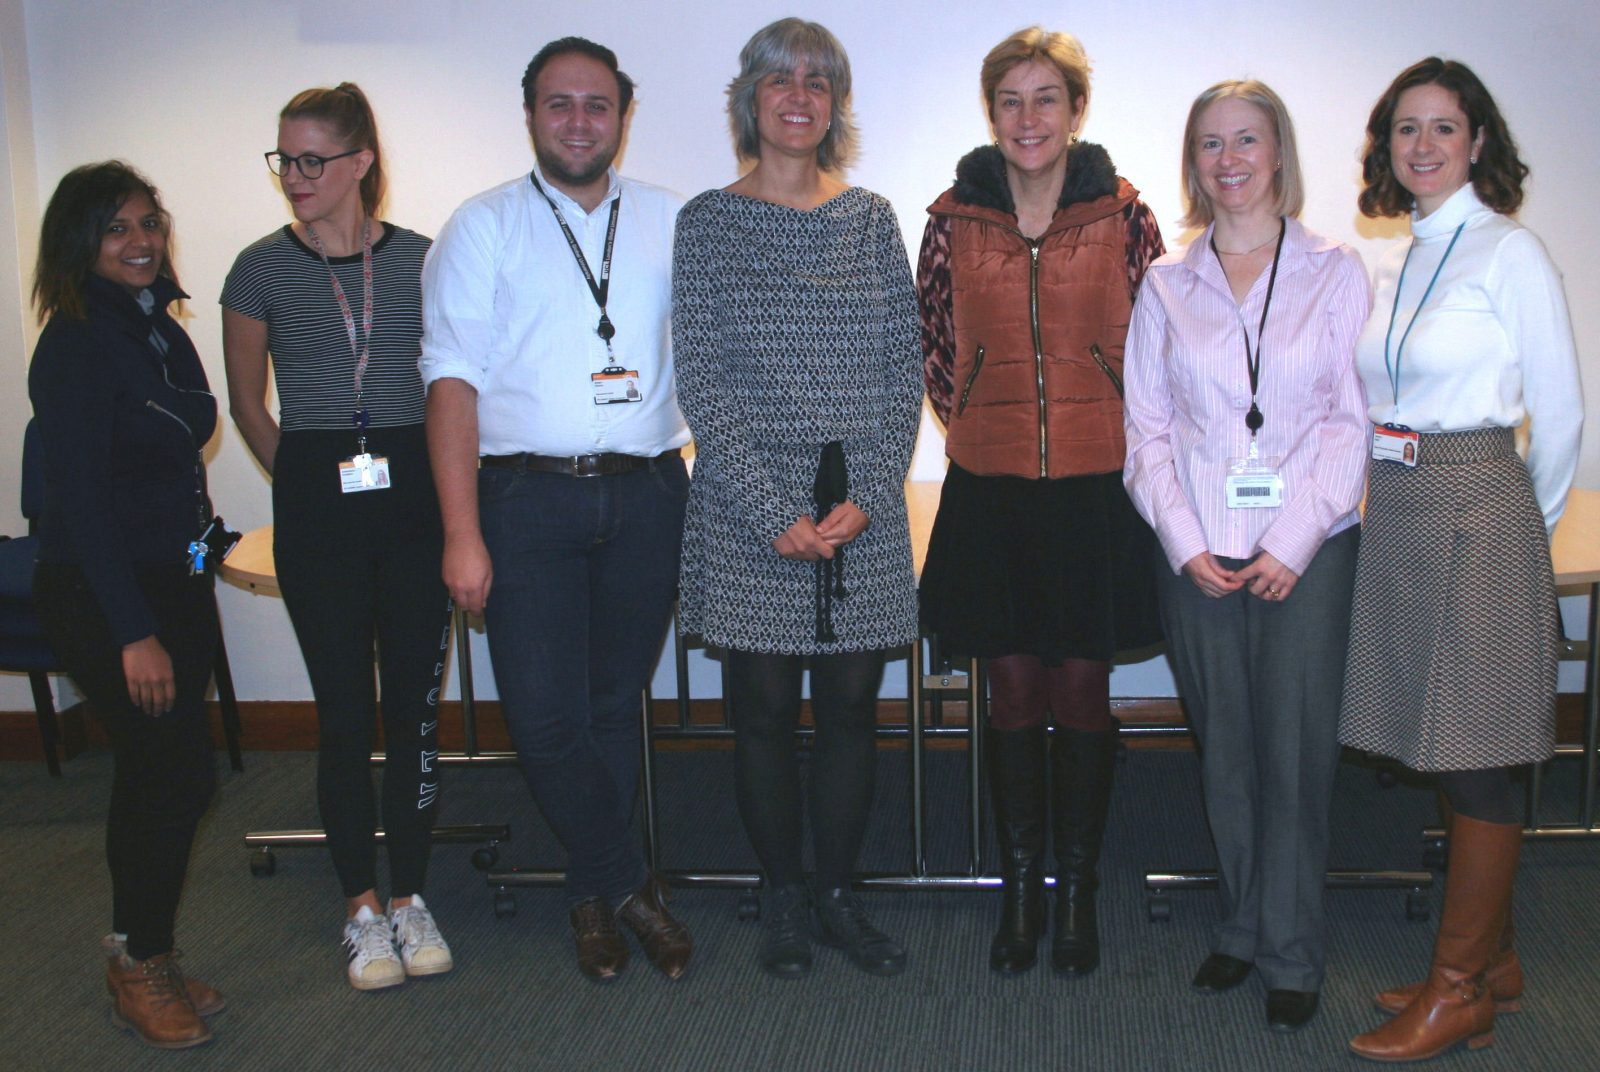 Dr Borges (centre) with members of the Sexual and Reproductive Health Research Team